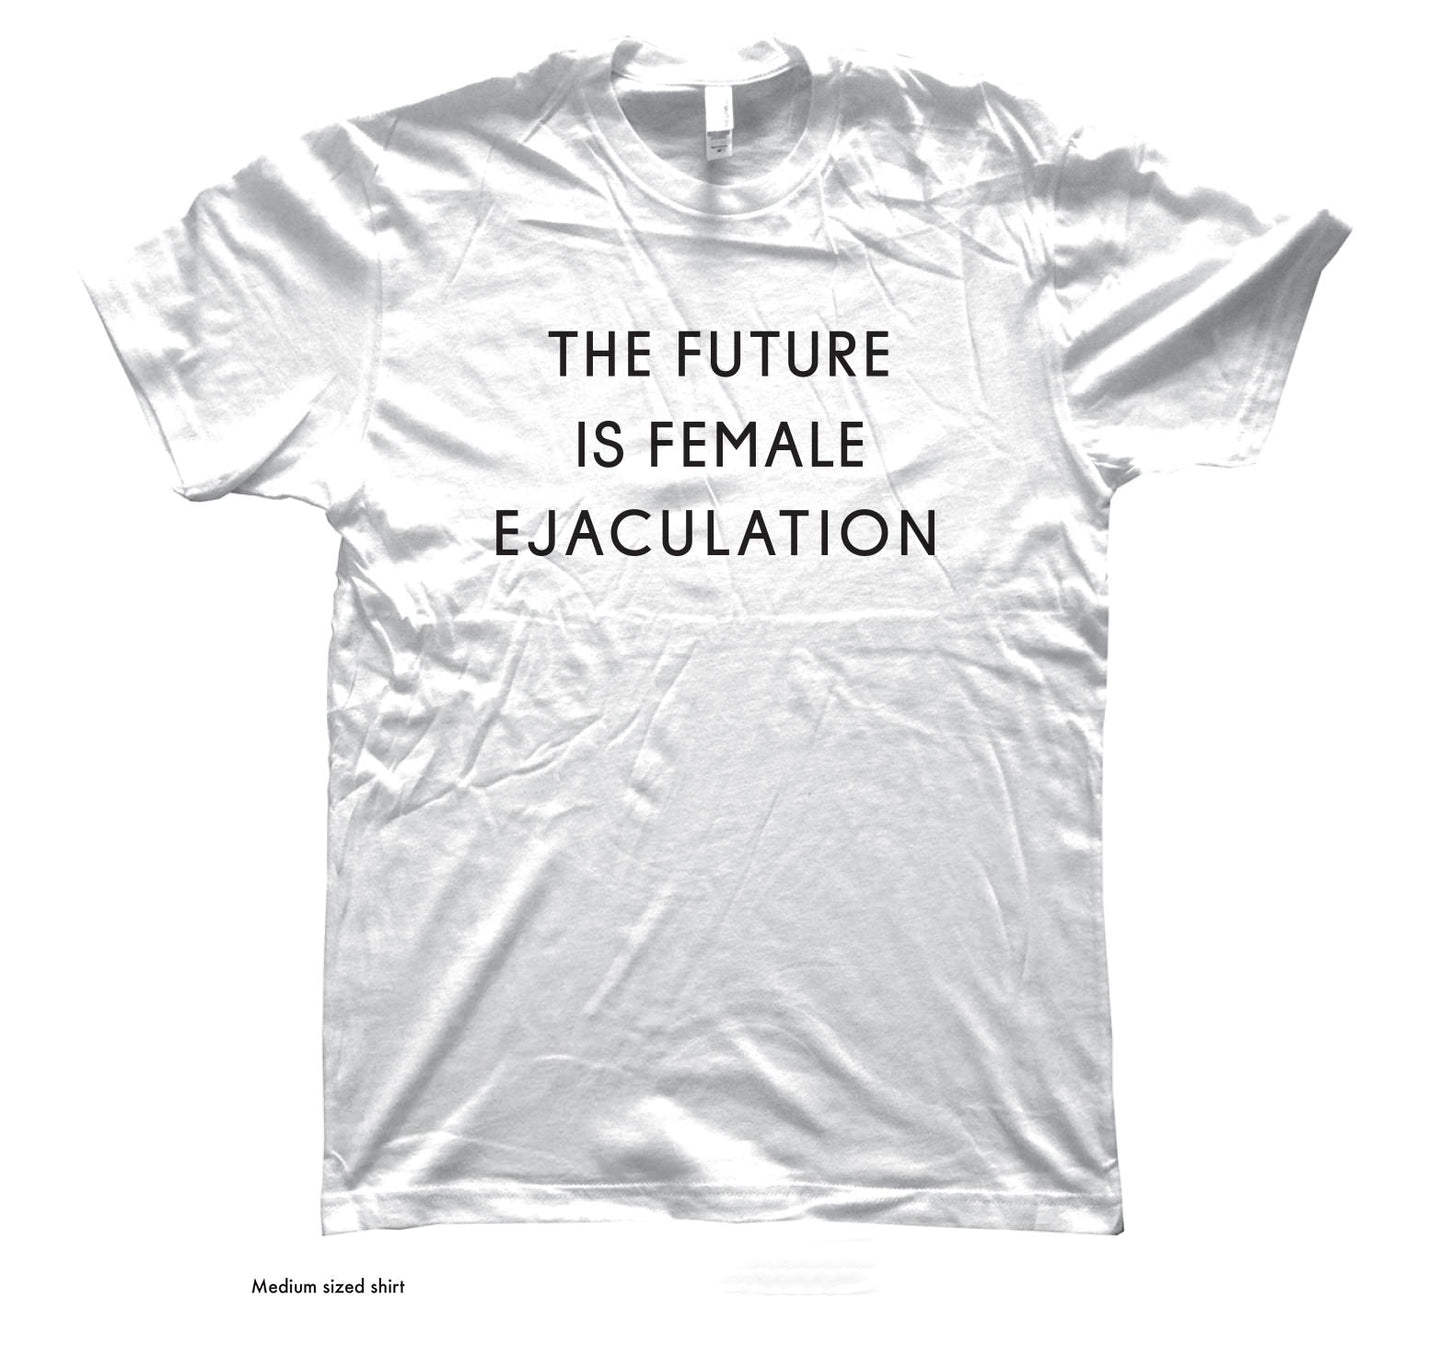 THE FUTURE IS FEMALE EJACULATION (WHITE)